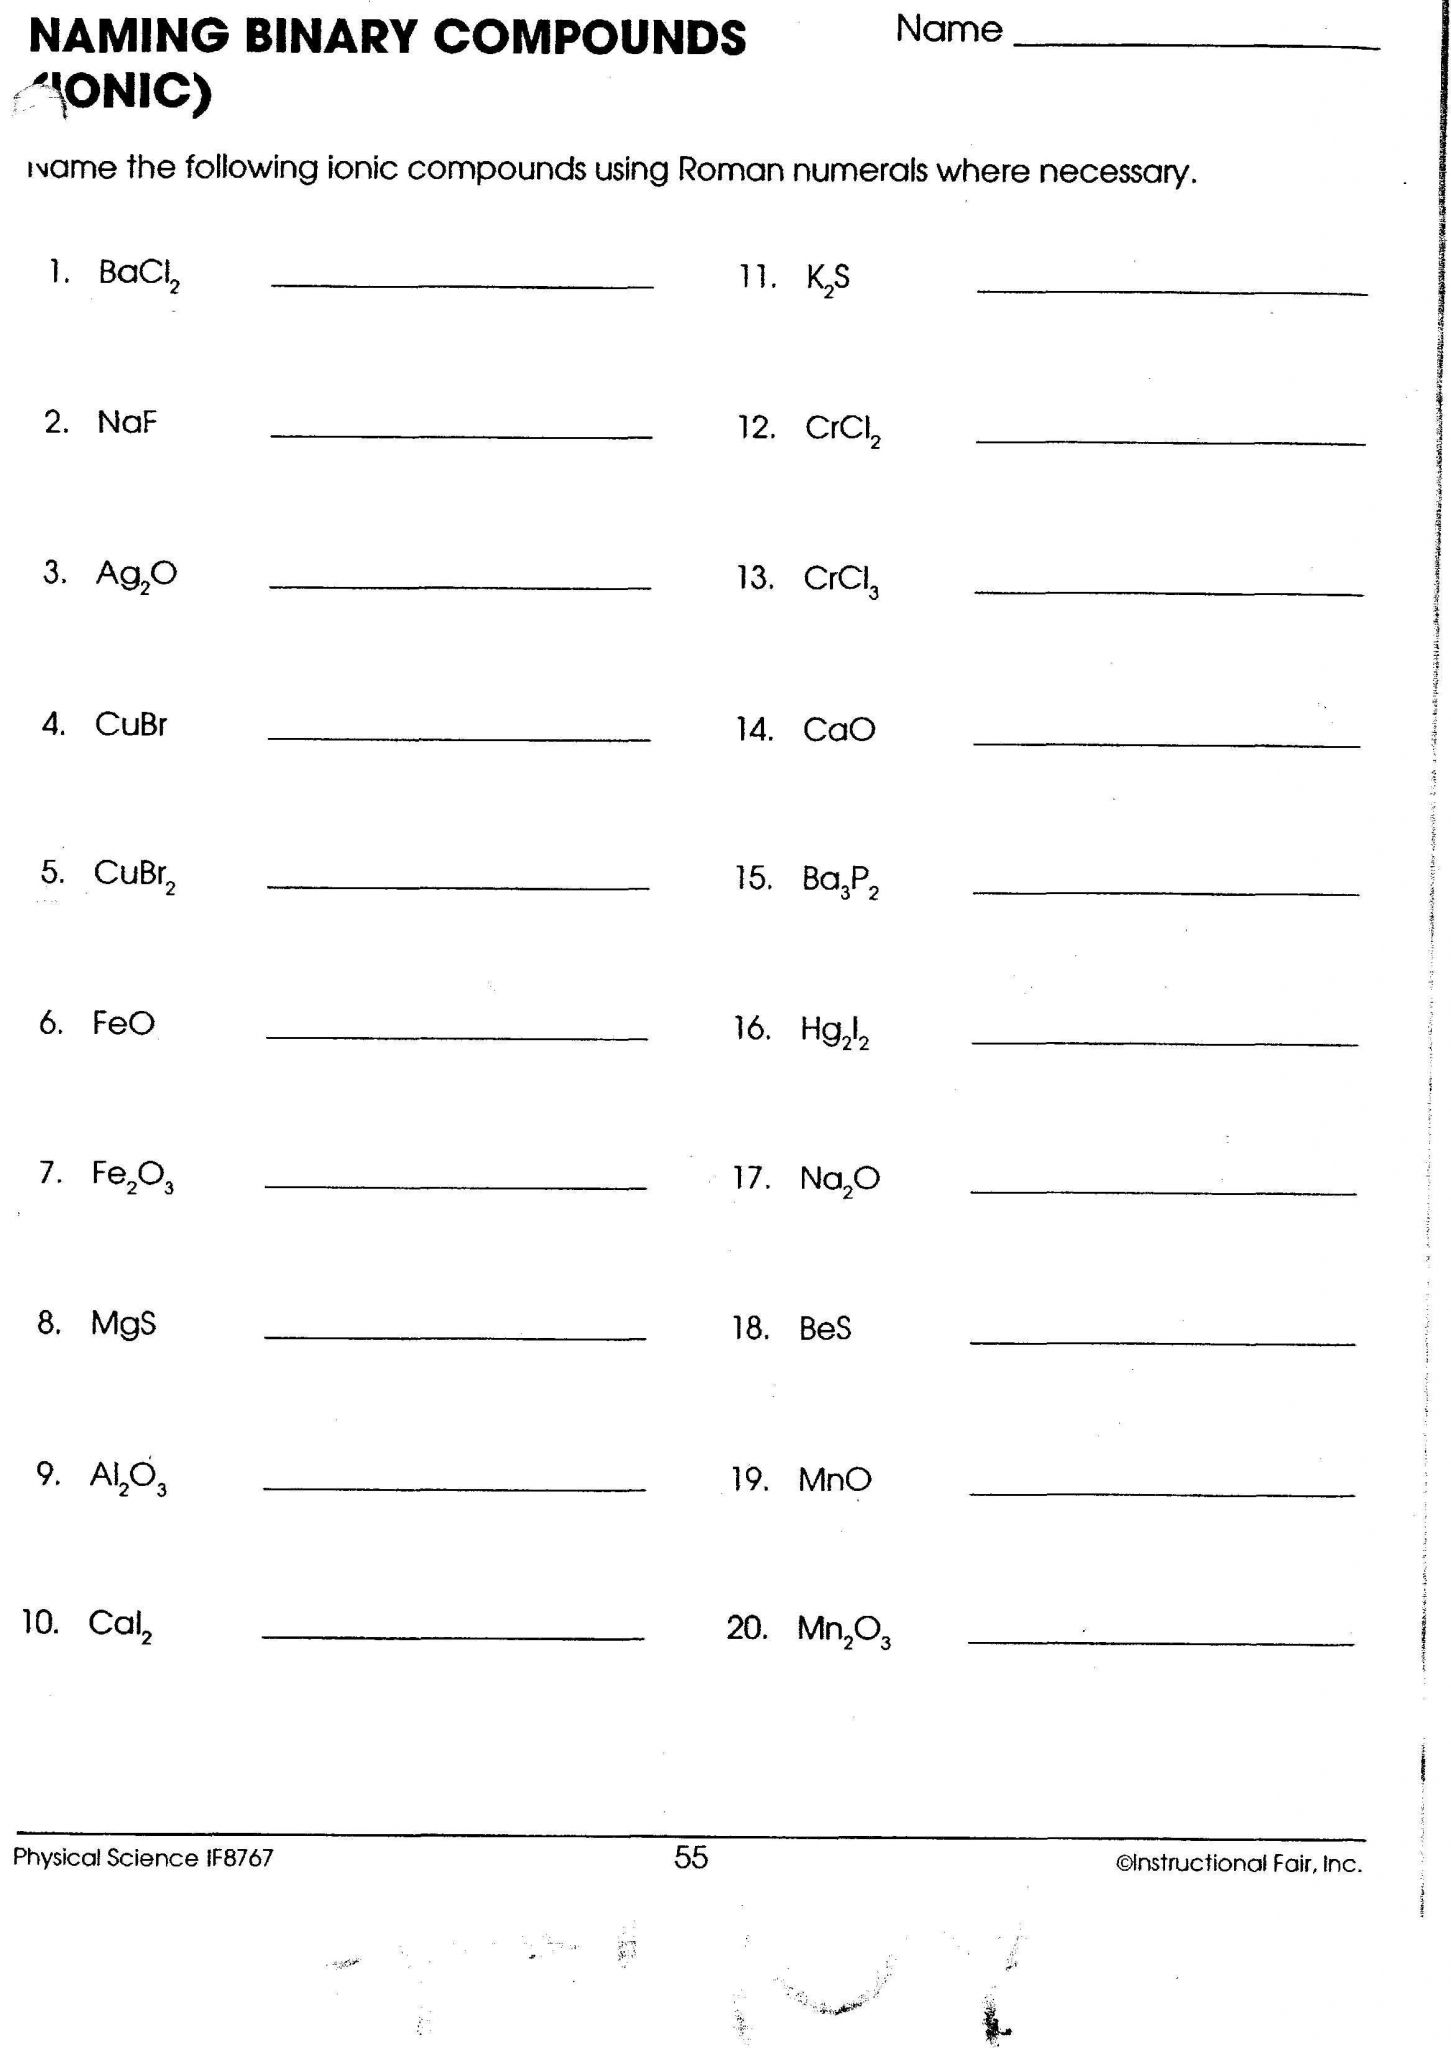 Naming Ions And Chemical Compounds Worksheet 1